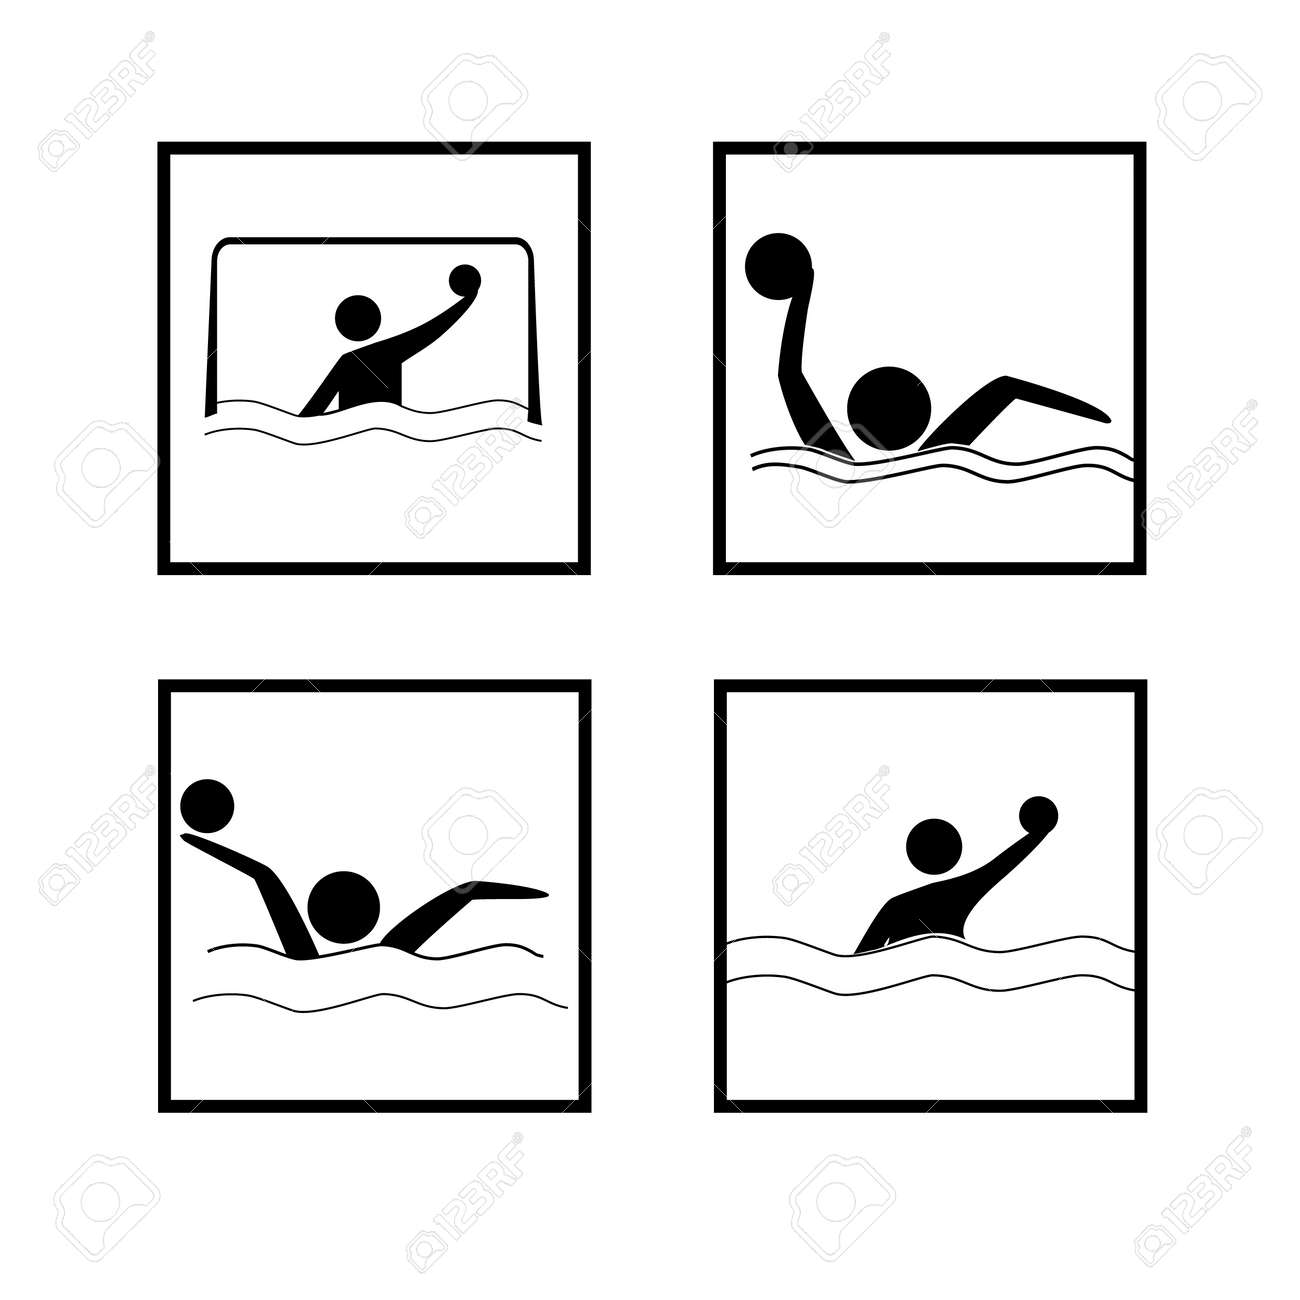 Water sports. Water polo set icon. Silhouette emblem of water polo. Logo professional sports in water. - 150070359